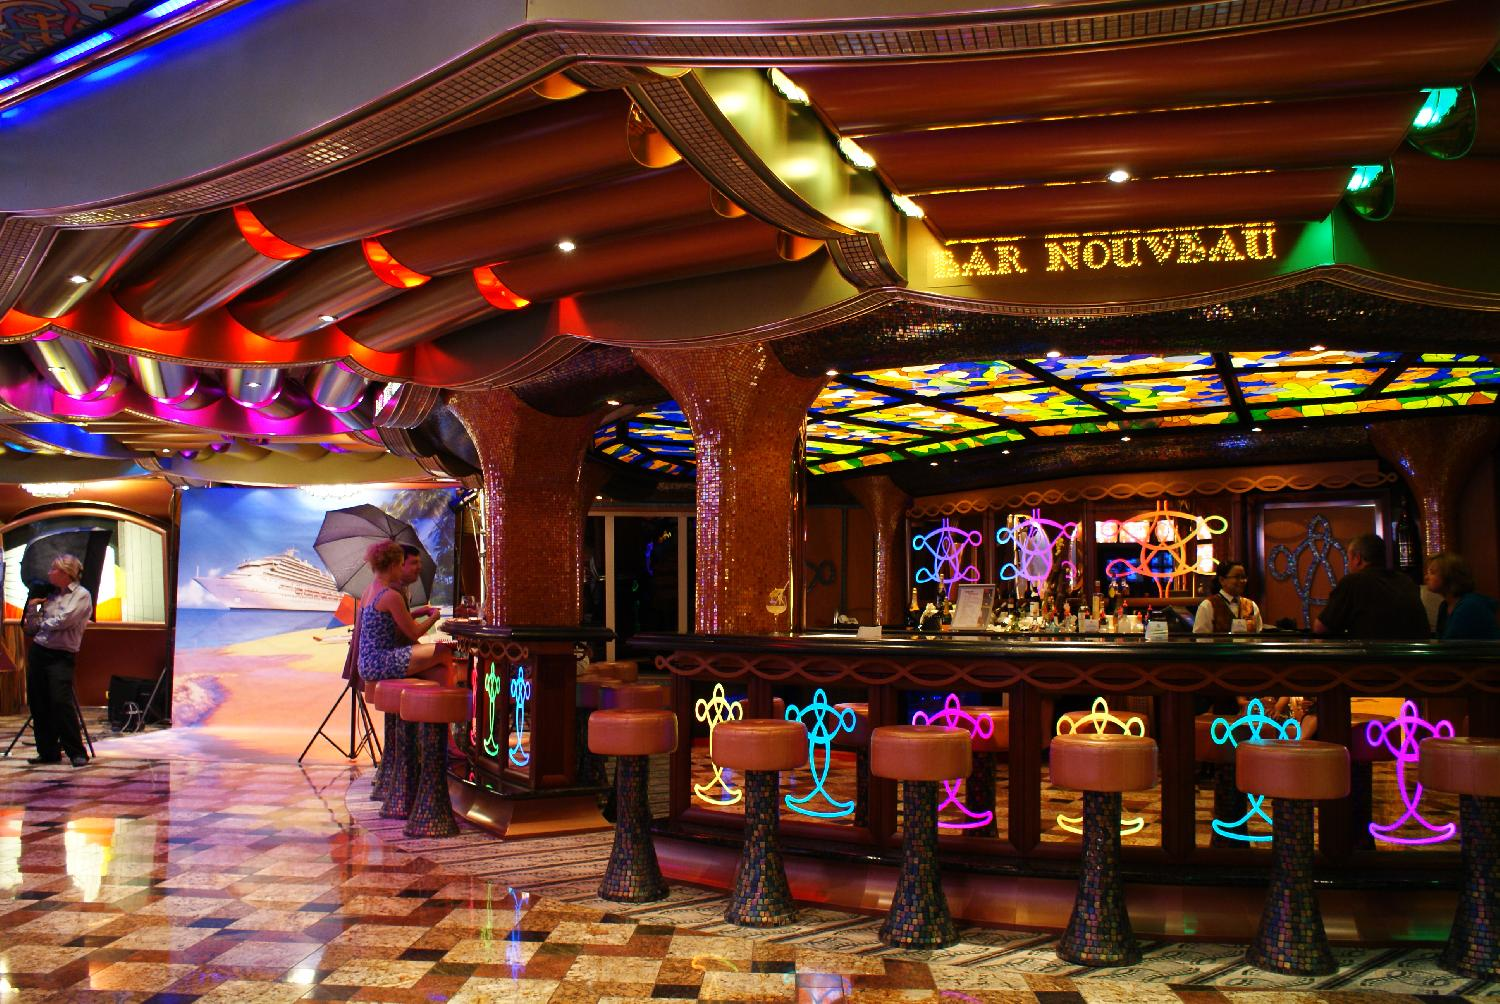 Bar nouveau on carnival freedom photo - Pictures of bars ...